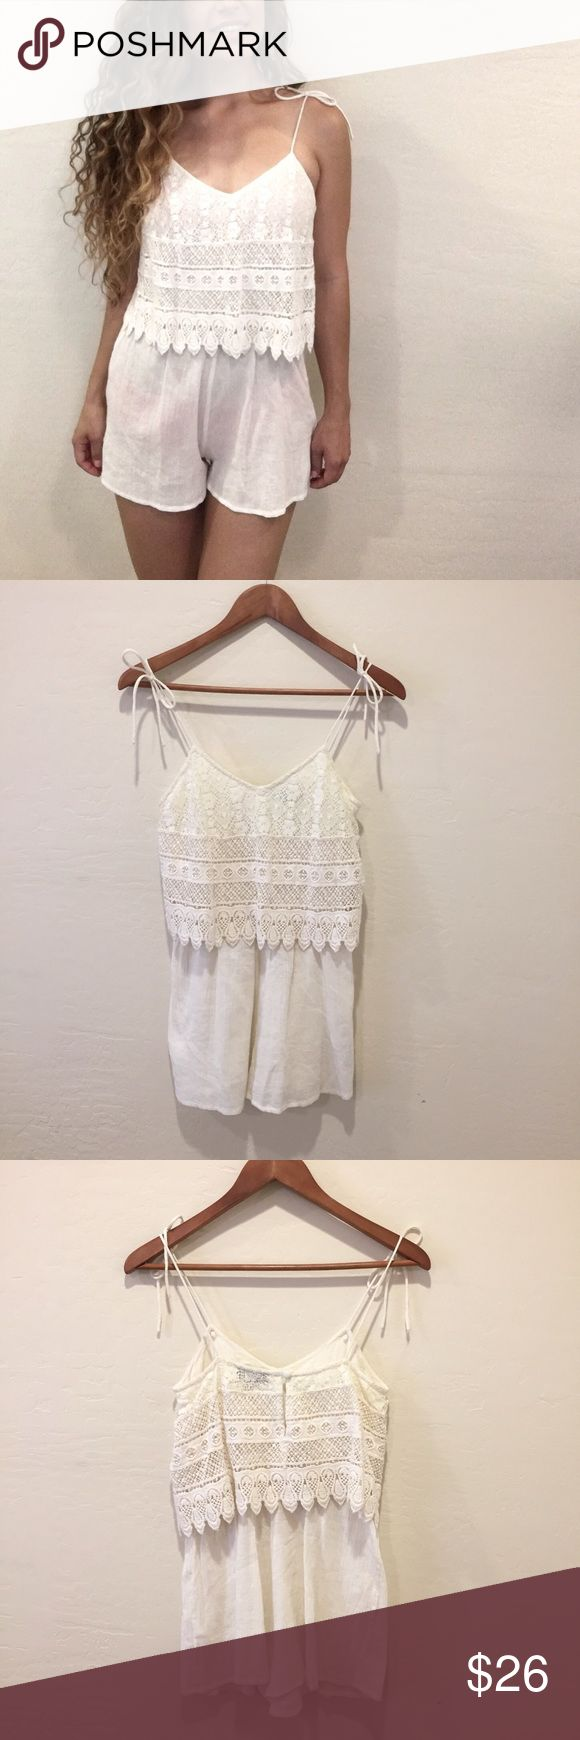 "Topshop Crochet Layer Playsuit Topshop Crochet Layer Playsuit! Women's size 4. In like-new condition. Catch the sun in this soft cream playsuit! Perfect as a swimsuit coverup! Transparent material. Shoulder ties. Lace design. Button closure in back. Perfect for complimenting sun-kissed skin! Approximate measurements given below:  Length: 29"" Inseam: 2"" Material: 100% cotton Size: 4  🔸10% off bundles of 2 or more items 🔸No Trades 🔸Reasonable offers accepted 🔸Fast Shipping  Please comment…"